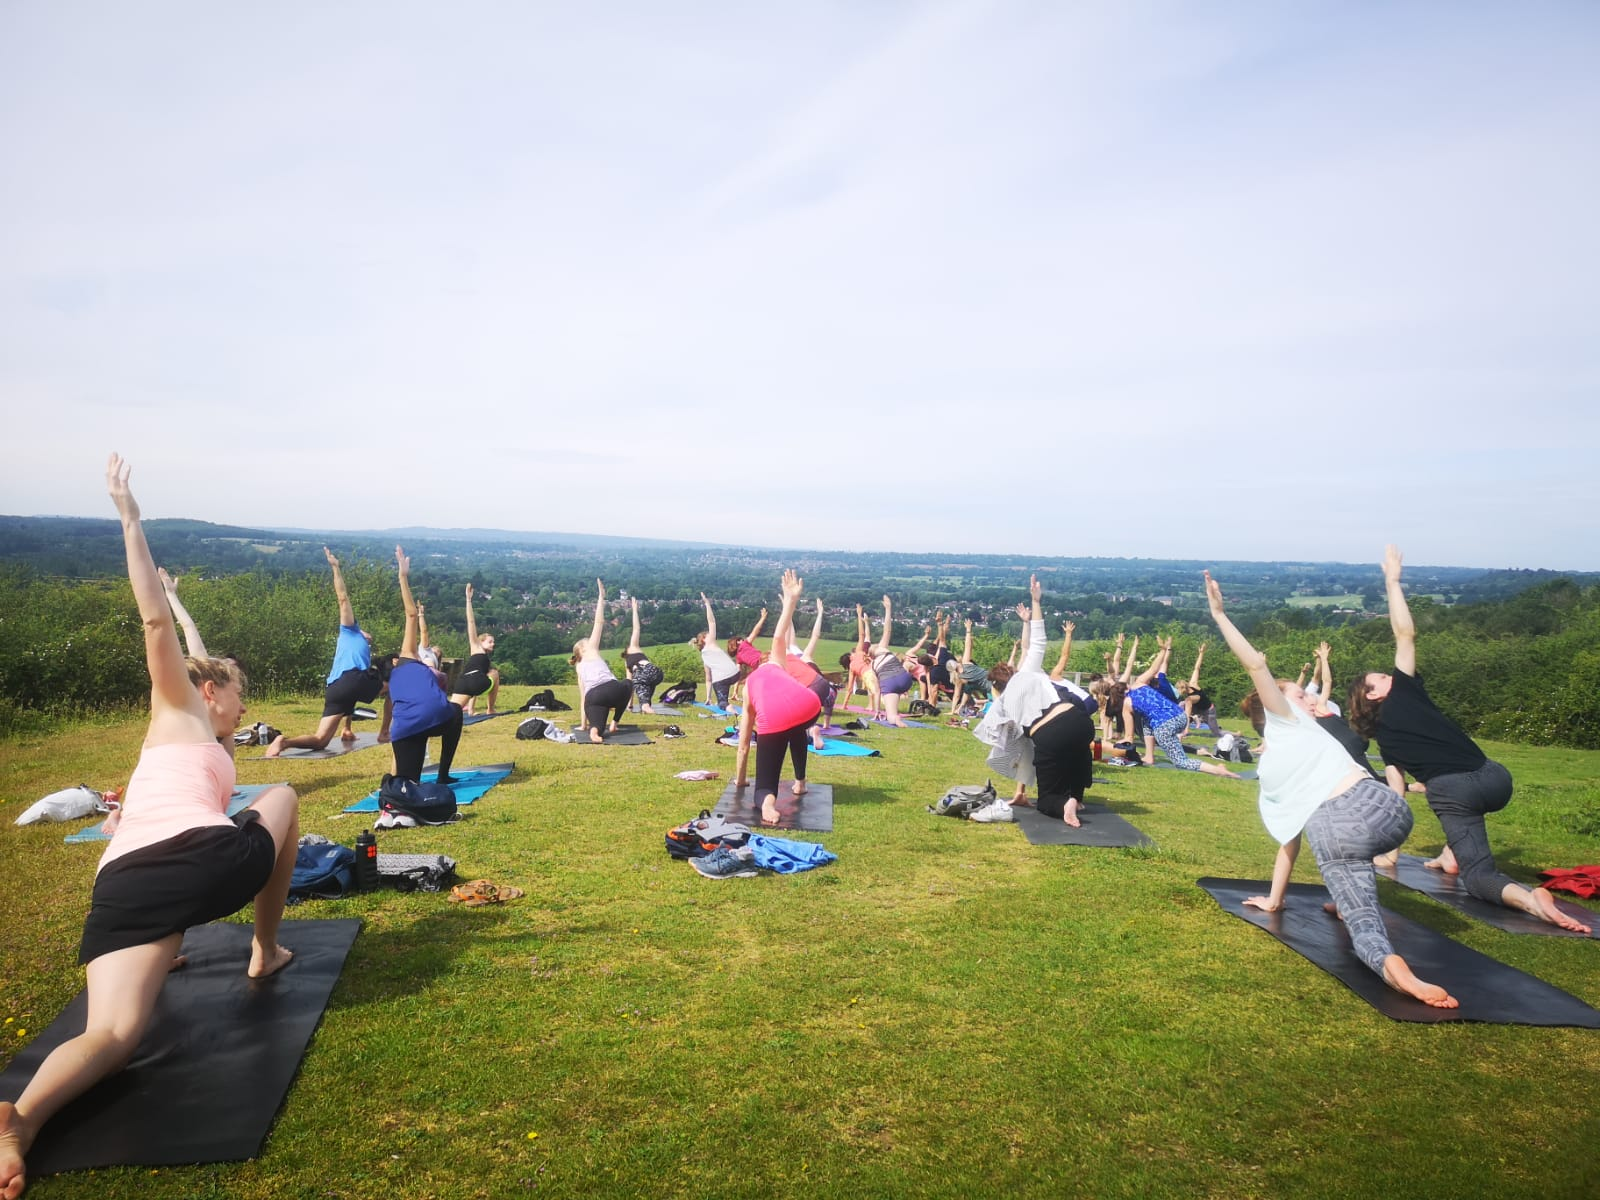 Lululemon Sunday event - Hike and Yoga with lululemon, Guildford. A monthly event open to the community.Beautiful way to spend a Sunday with lovely food after from Pho!